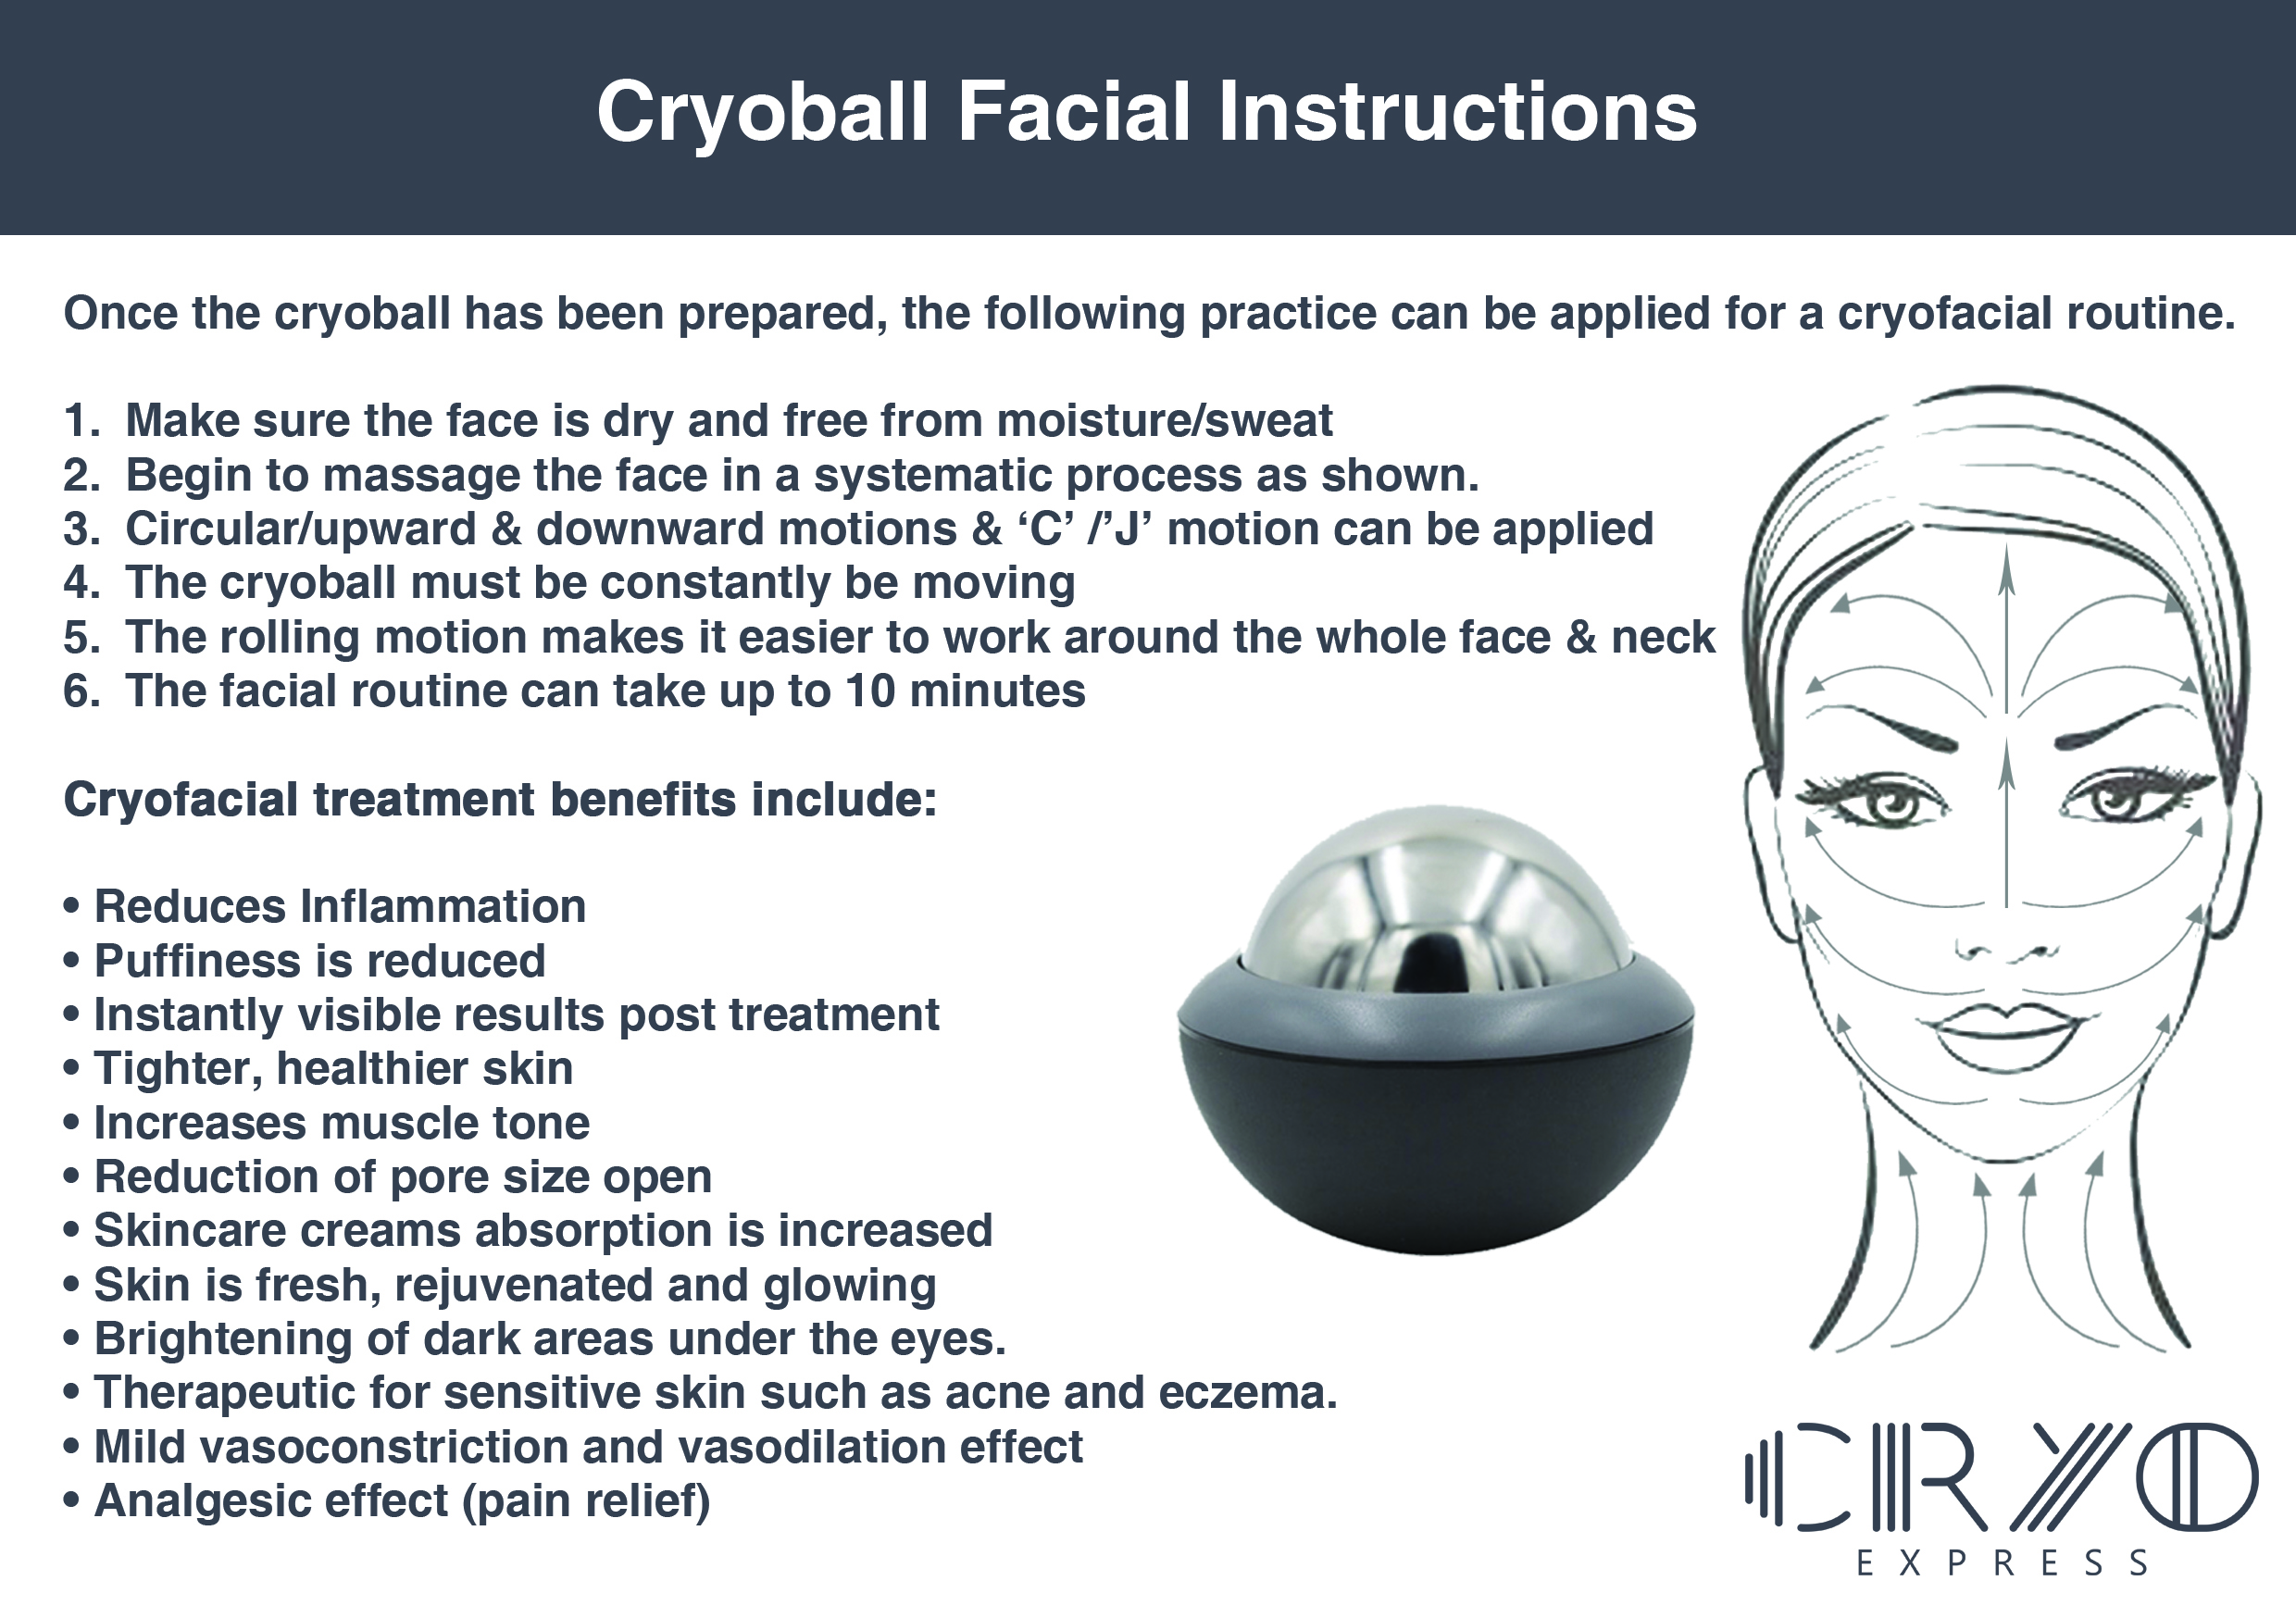 Cryo ball Facial Instructions